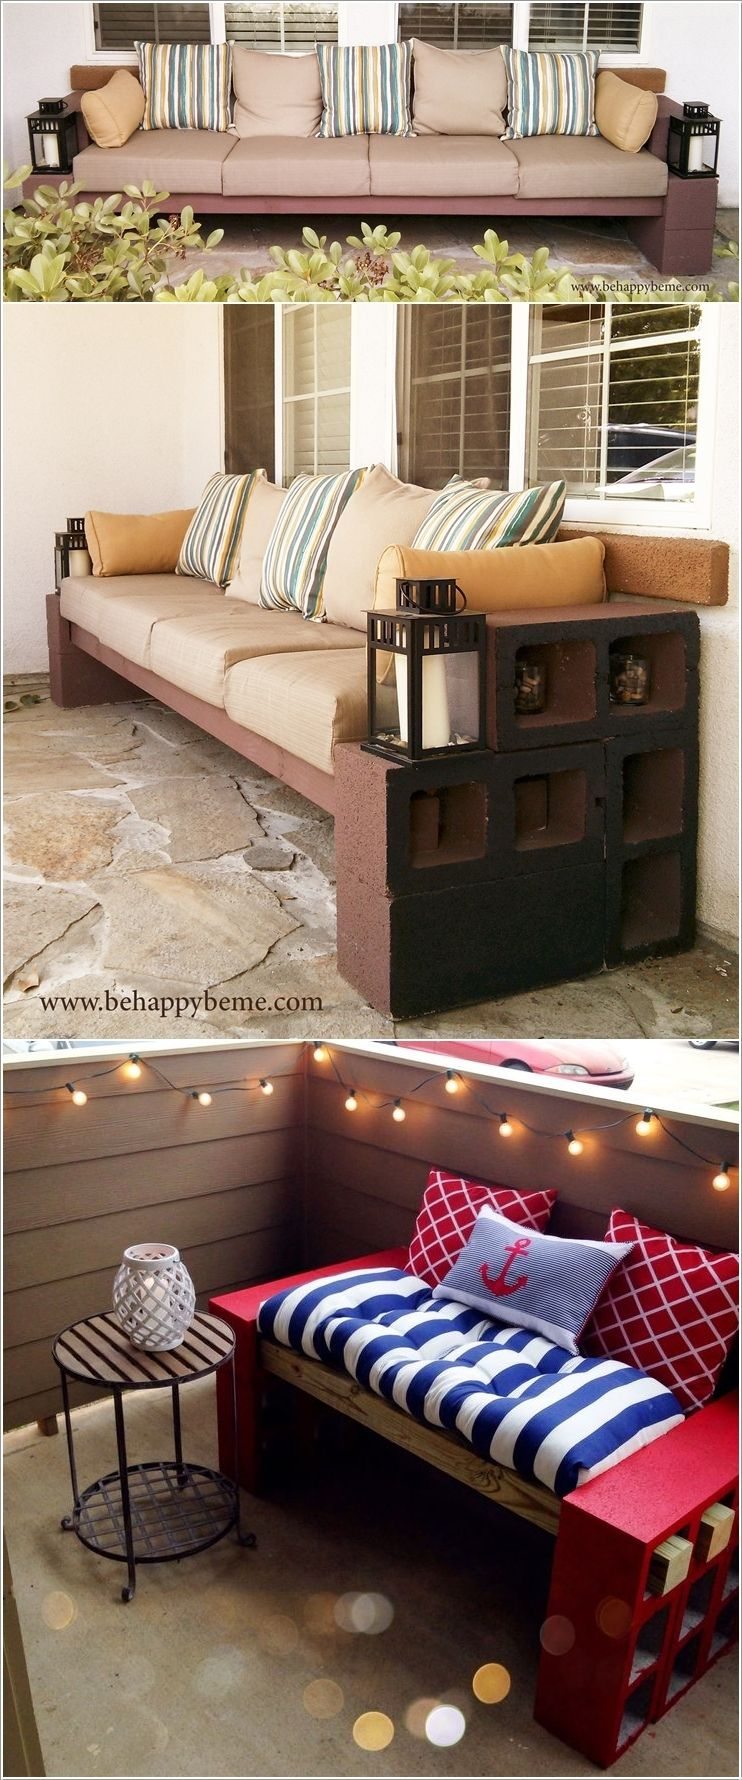 Diy Cinder Block Bench Idea Diy Patio Decor Home Decor